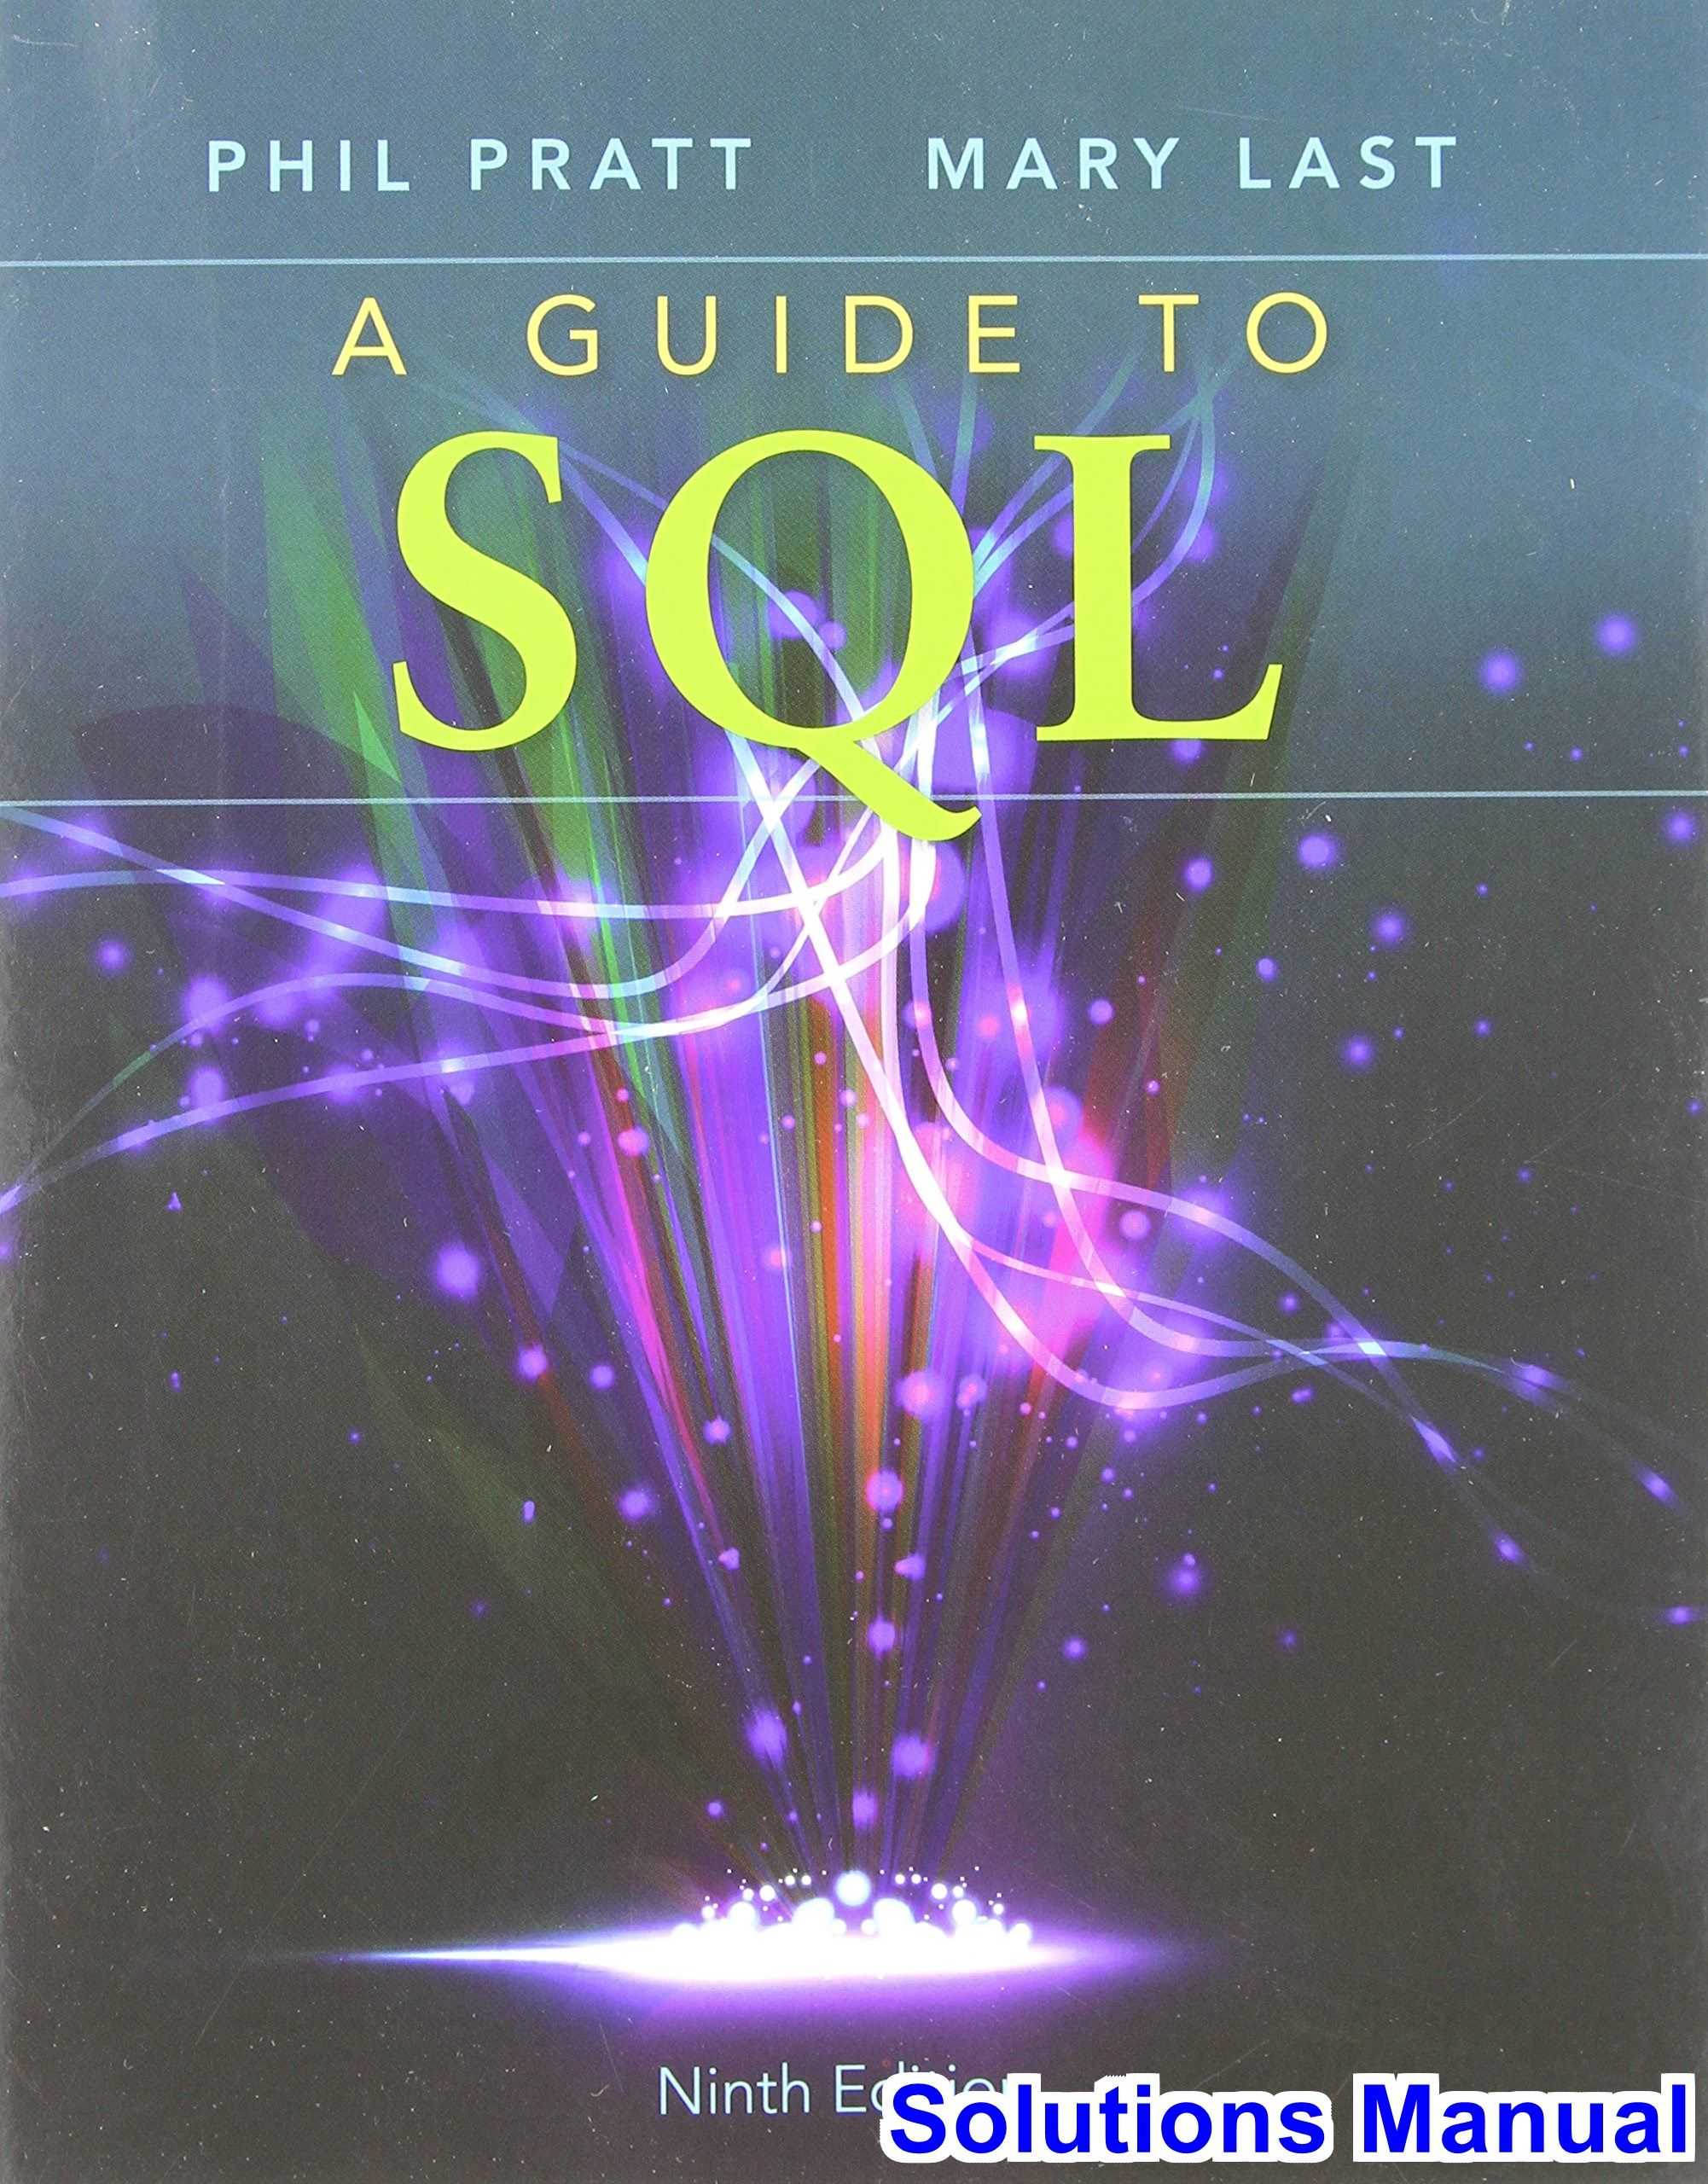 Guide to sql 9th edition pratt solutions manual test bank guide to sql 9th edition pratt solutions manual test bank solutions manual exam bank quiz bank answer key for textbook download instantly fandeluxe Choice Image